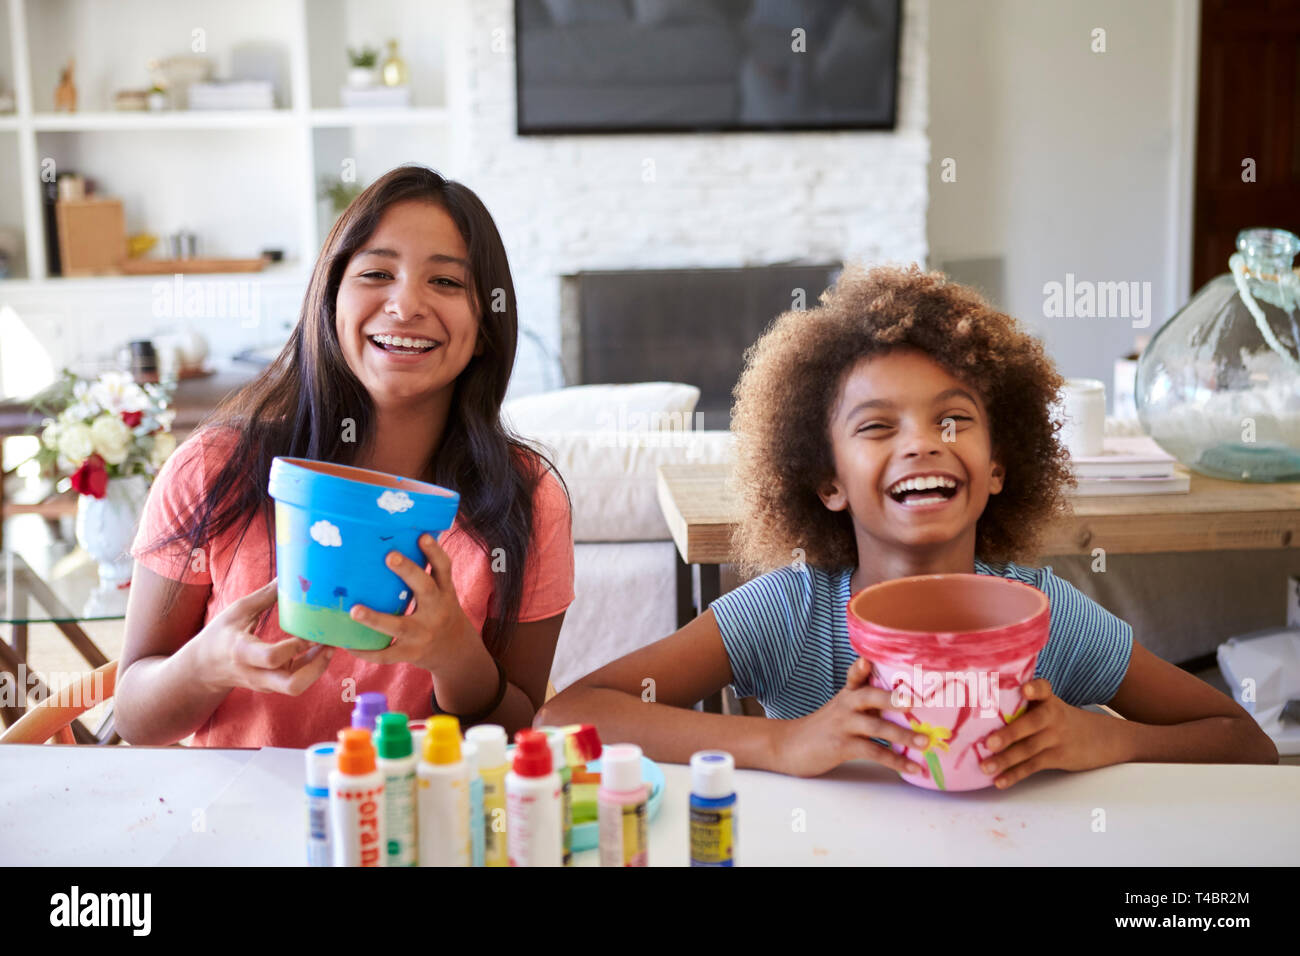 Happy pre-teen girl and her older girlfriend holding plant pots that they've decorated with paints at home, smiling to camera, close up - Stock Image